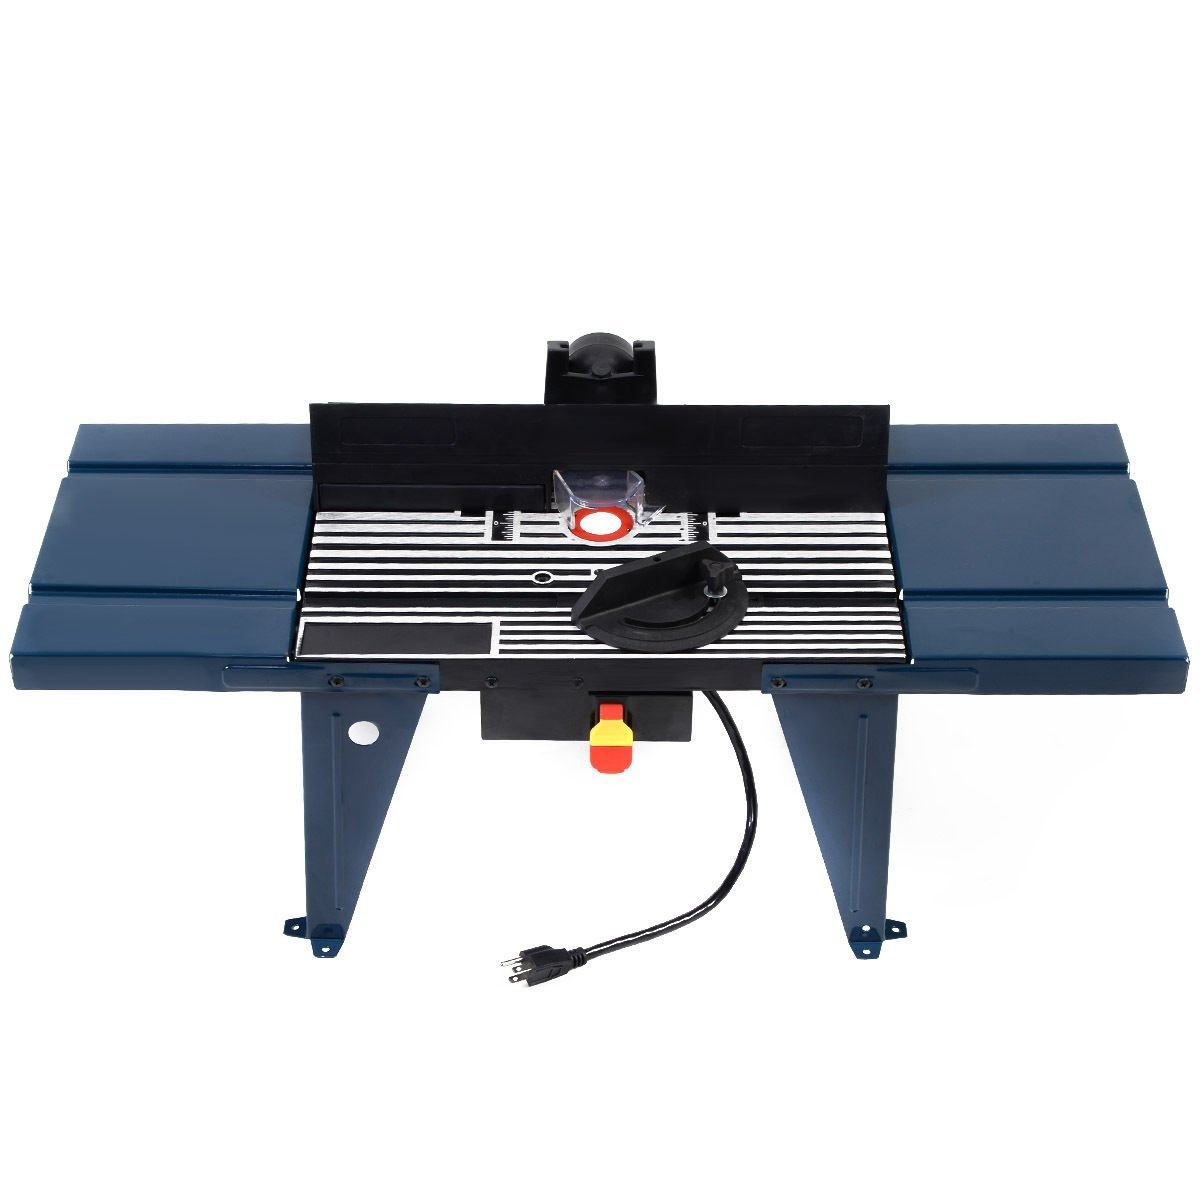 New MTN-G Electric Aluminum Router Table Wood Working Cra...